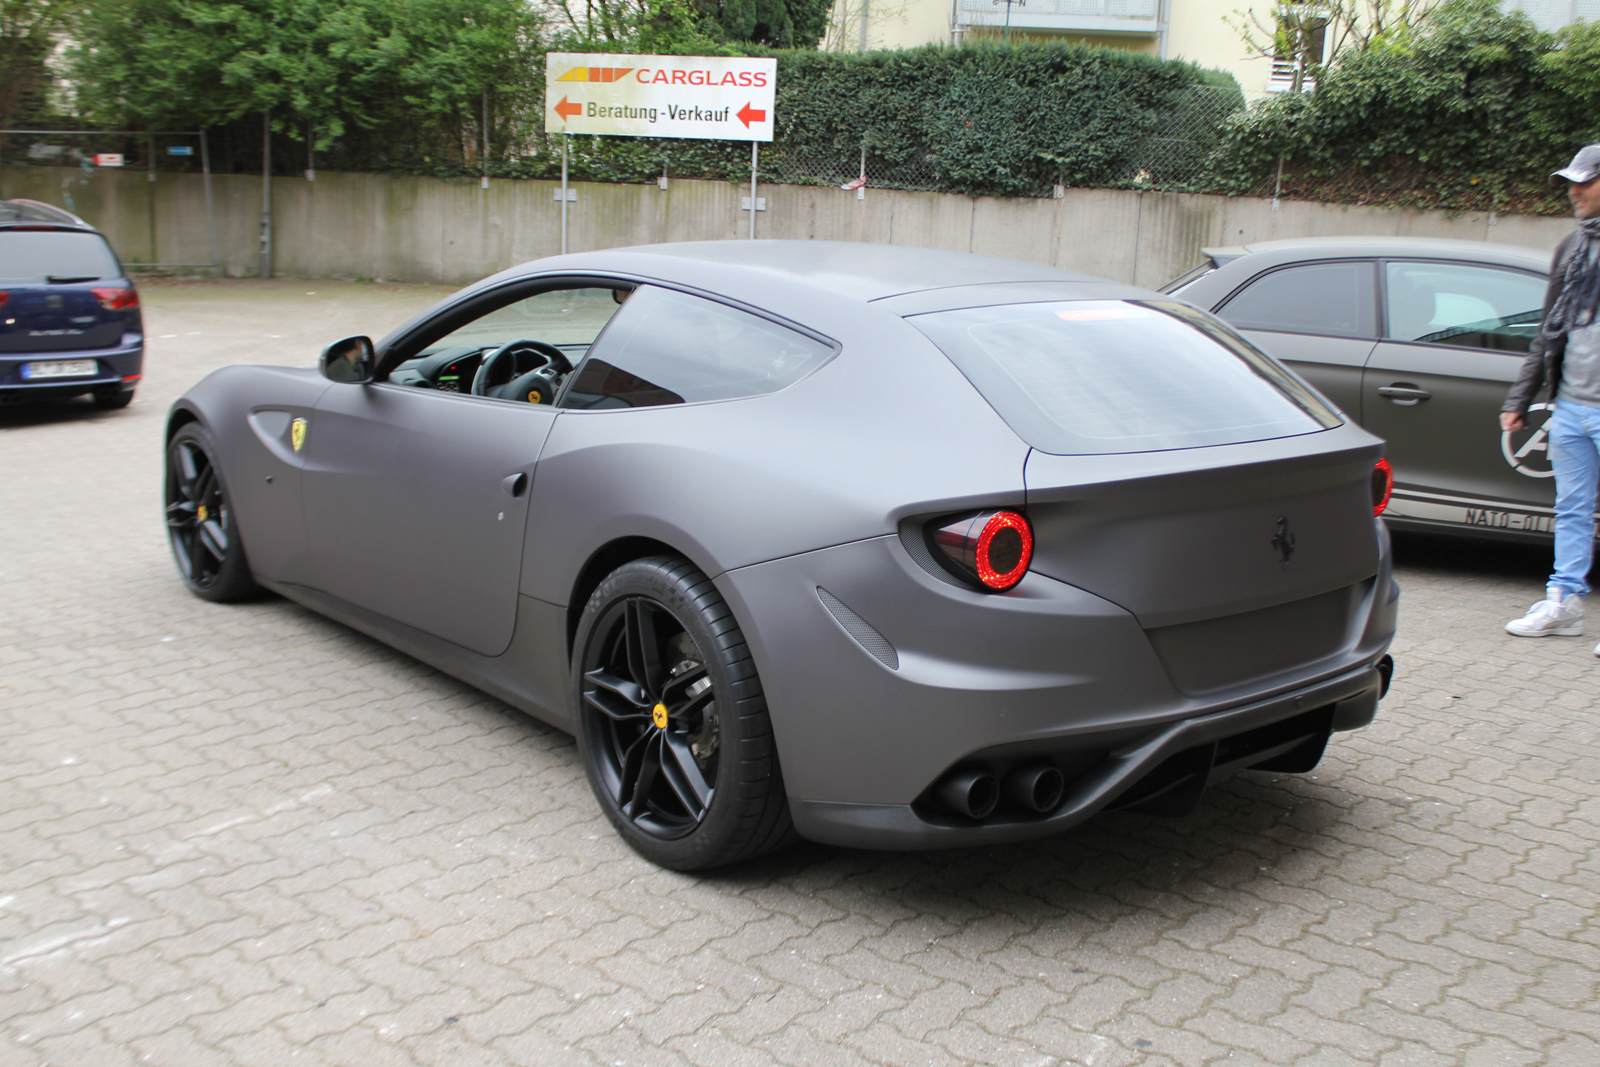 Auto Folierung Car Wrapping Ferrari FF Anthrazit Metallic Matt Schwarz Gebürstet